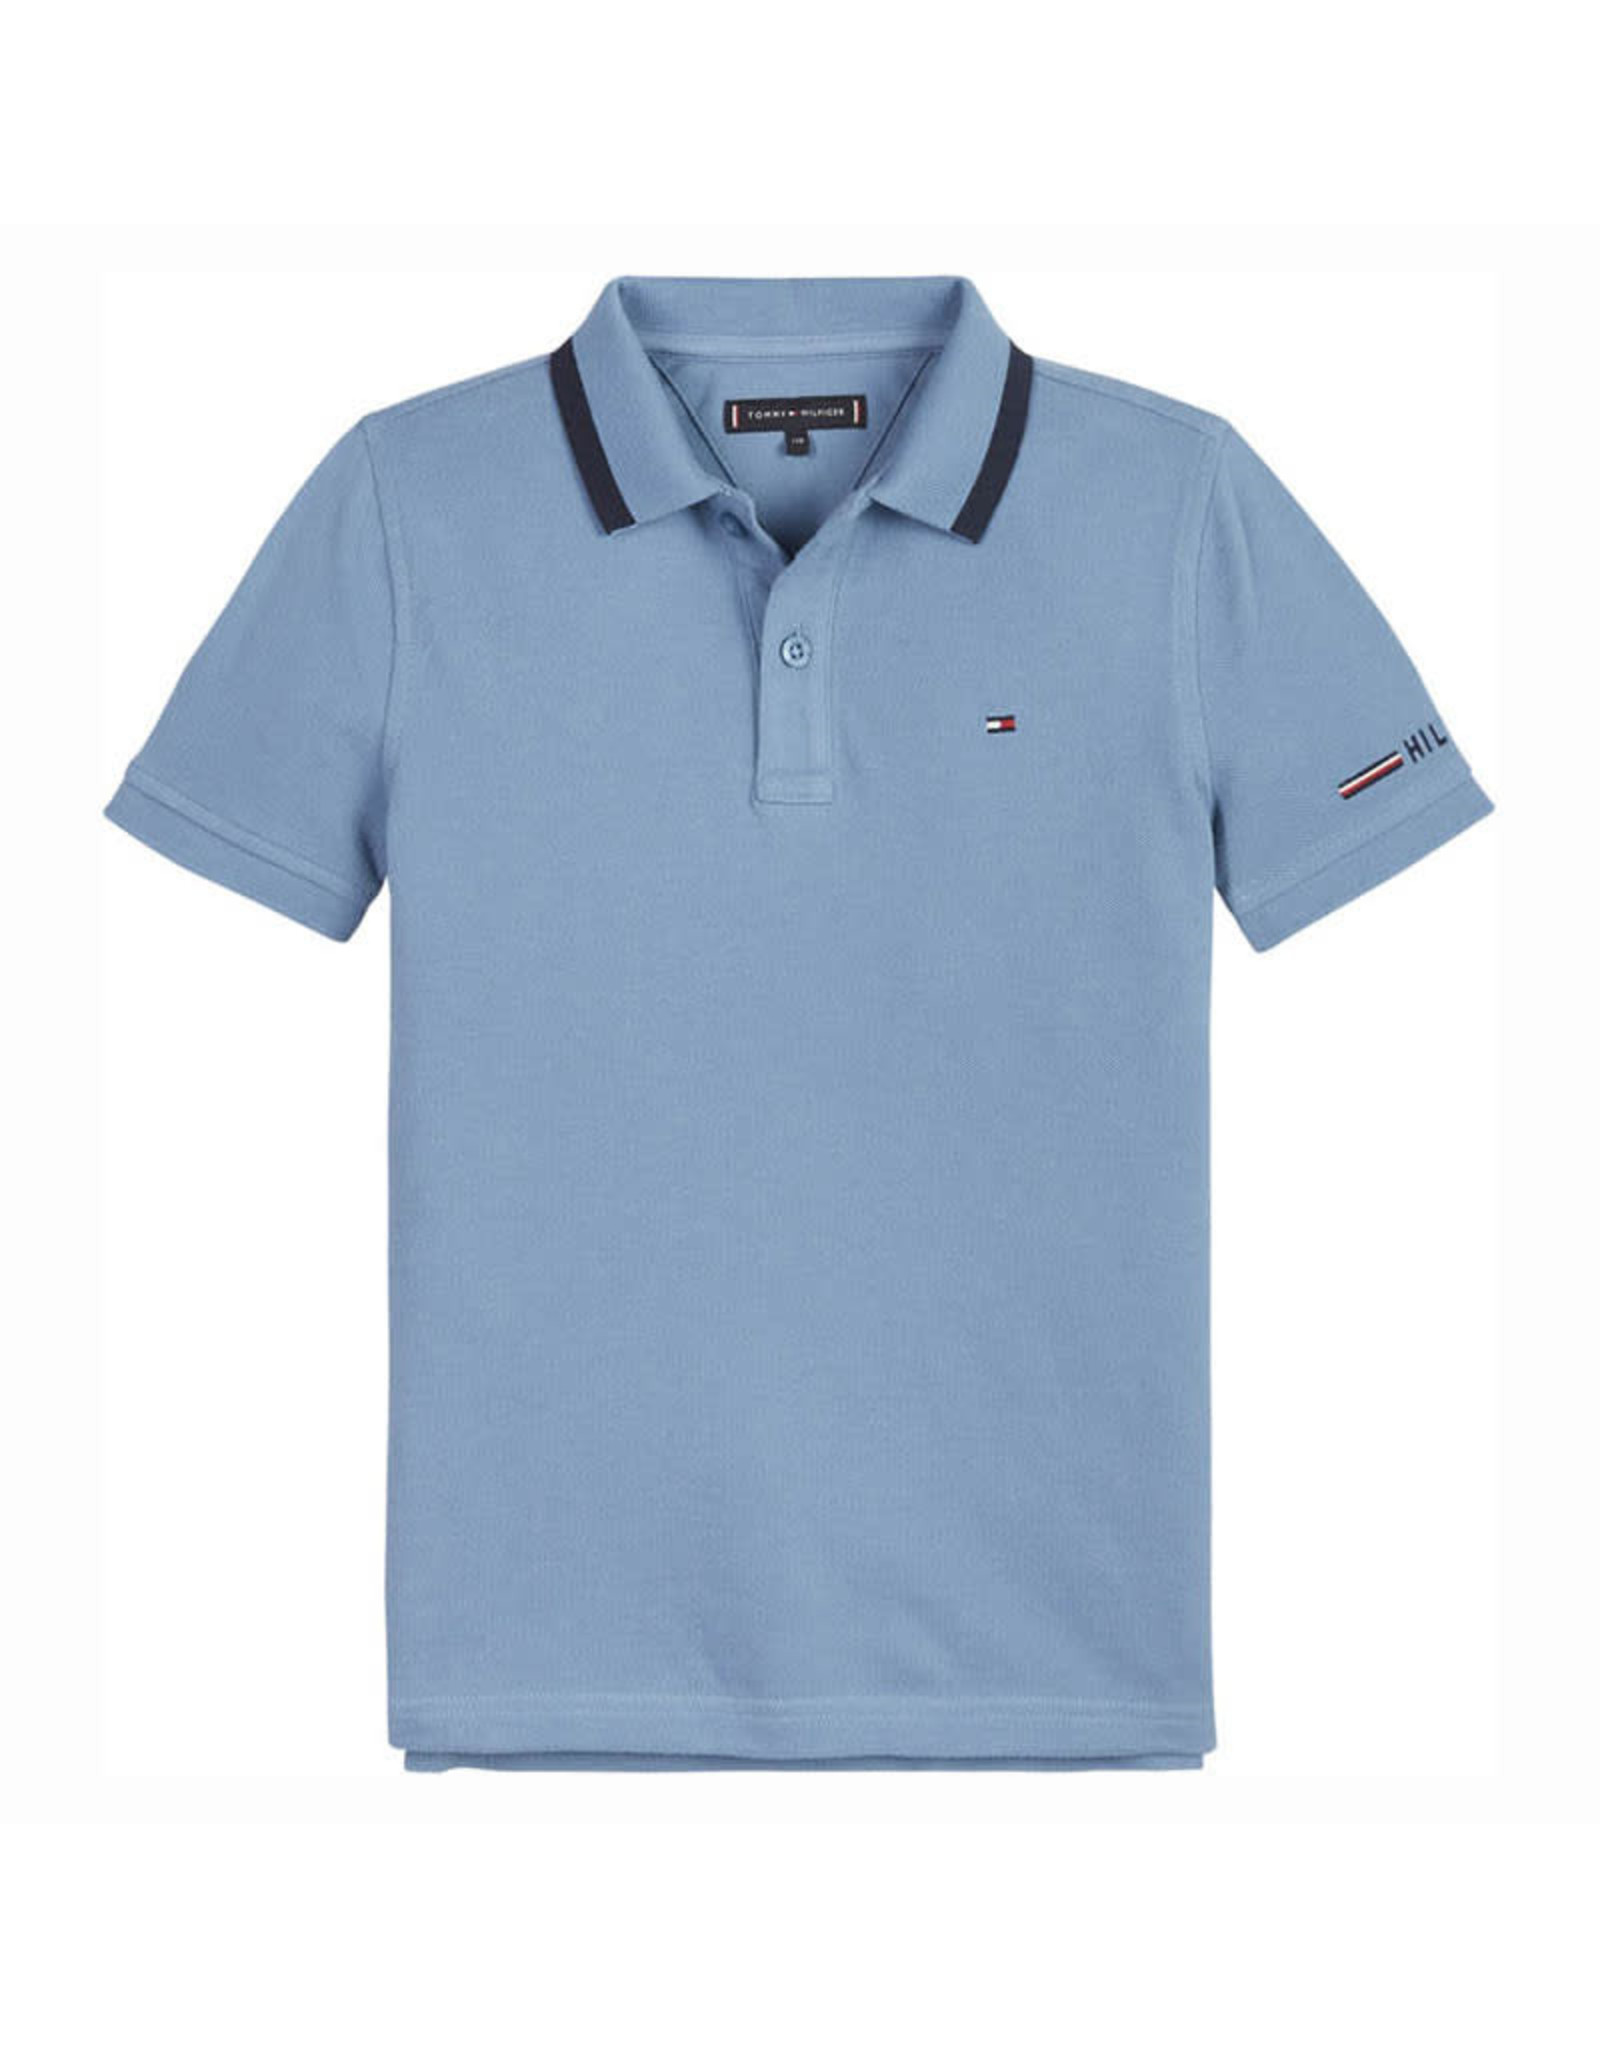 Tommy Hilfiger 6121 polo